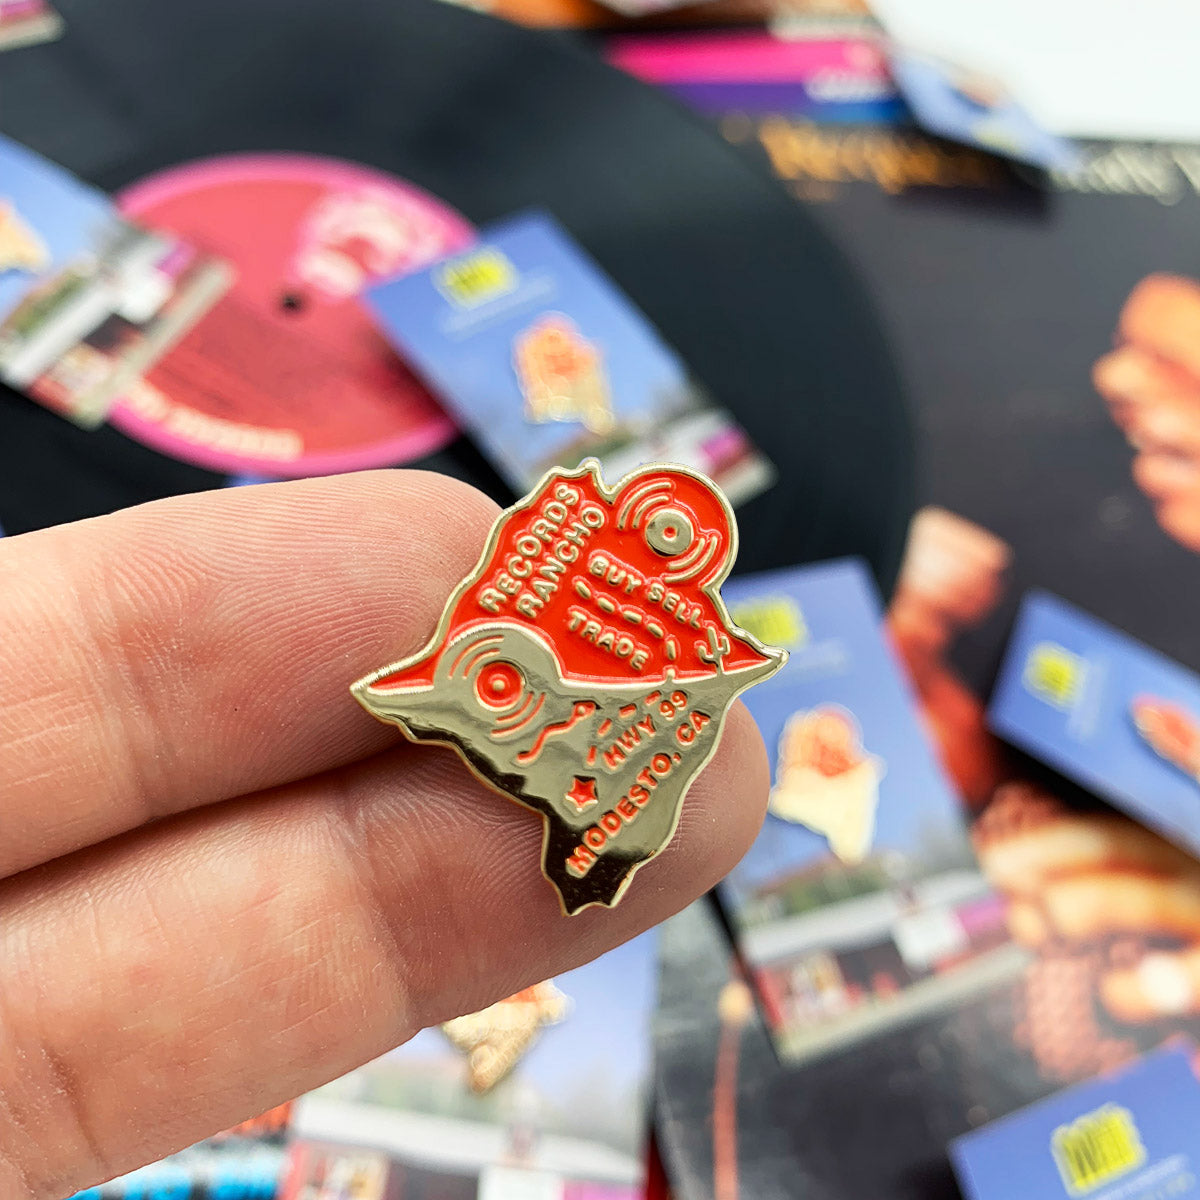 Records Rancho Enamel Pin + Booklet